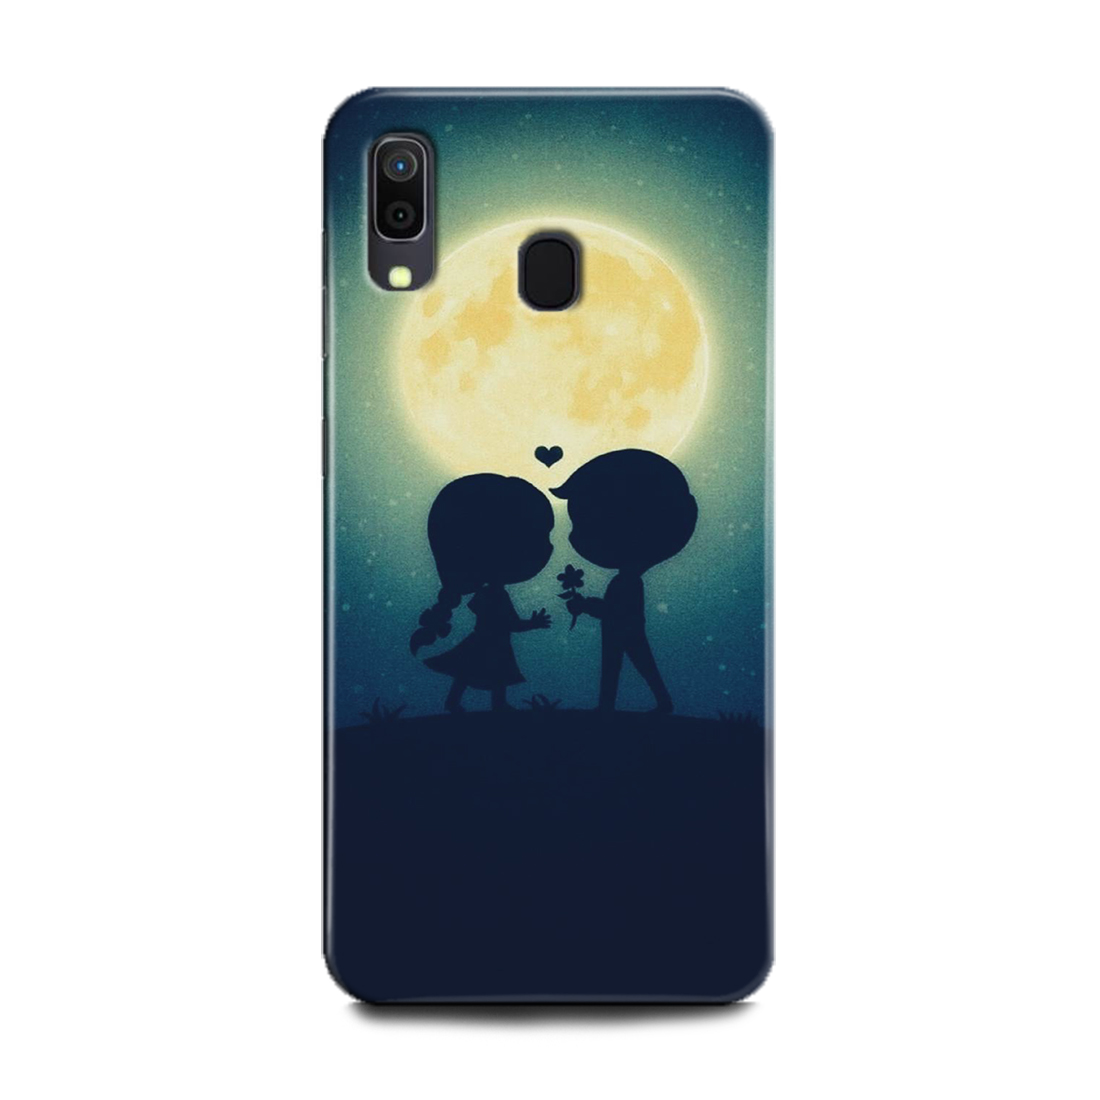 INDICRAFT Mobile Back Cover For Samsung Galaxy A30 Hard Case (Love, Hart, Landscapes, Moon, Boy, Girl, Sky, Together, A30) (AB-GalaxyA30-0562)